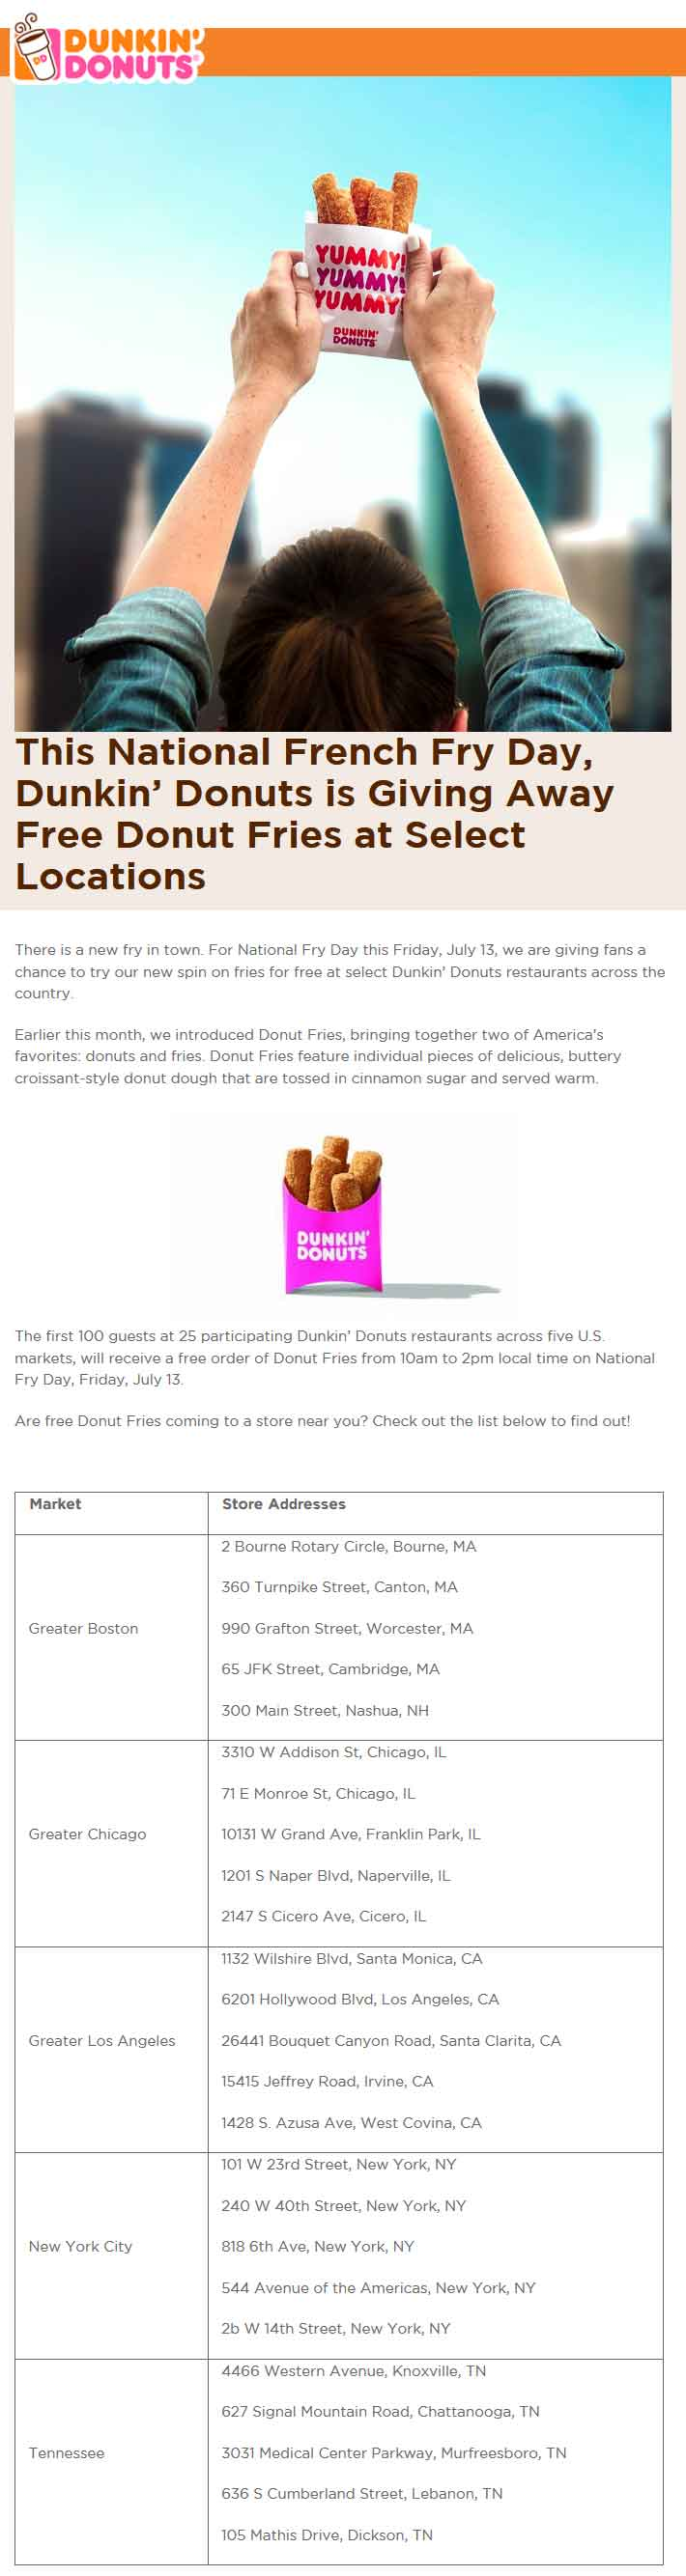 Dunkin Donuts Coupon September 2018 Free donut fries Friday at various Dunkin Donuts locations